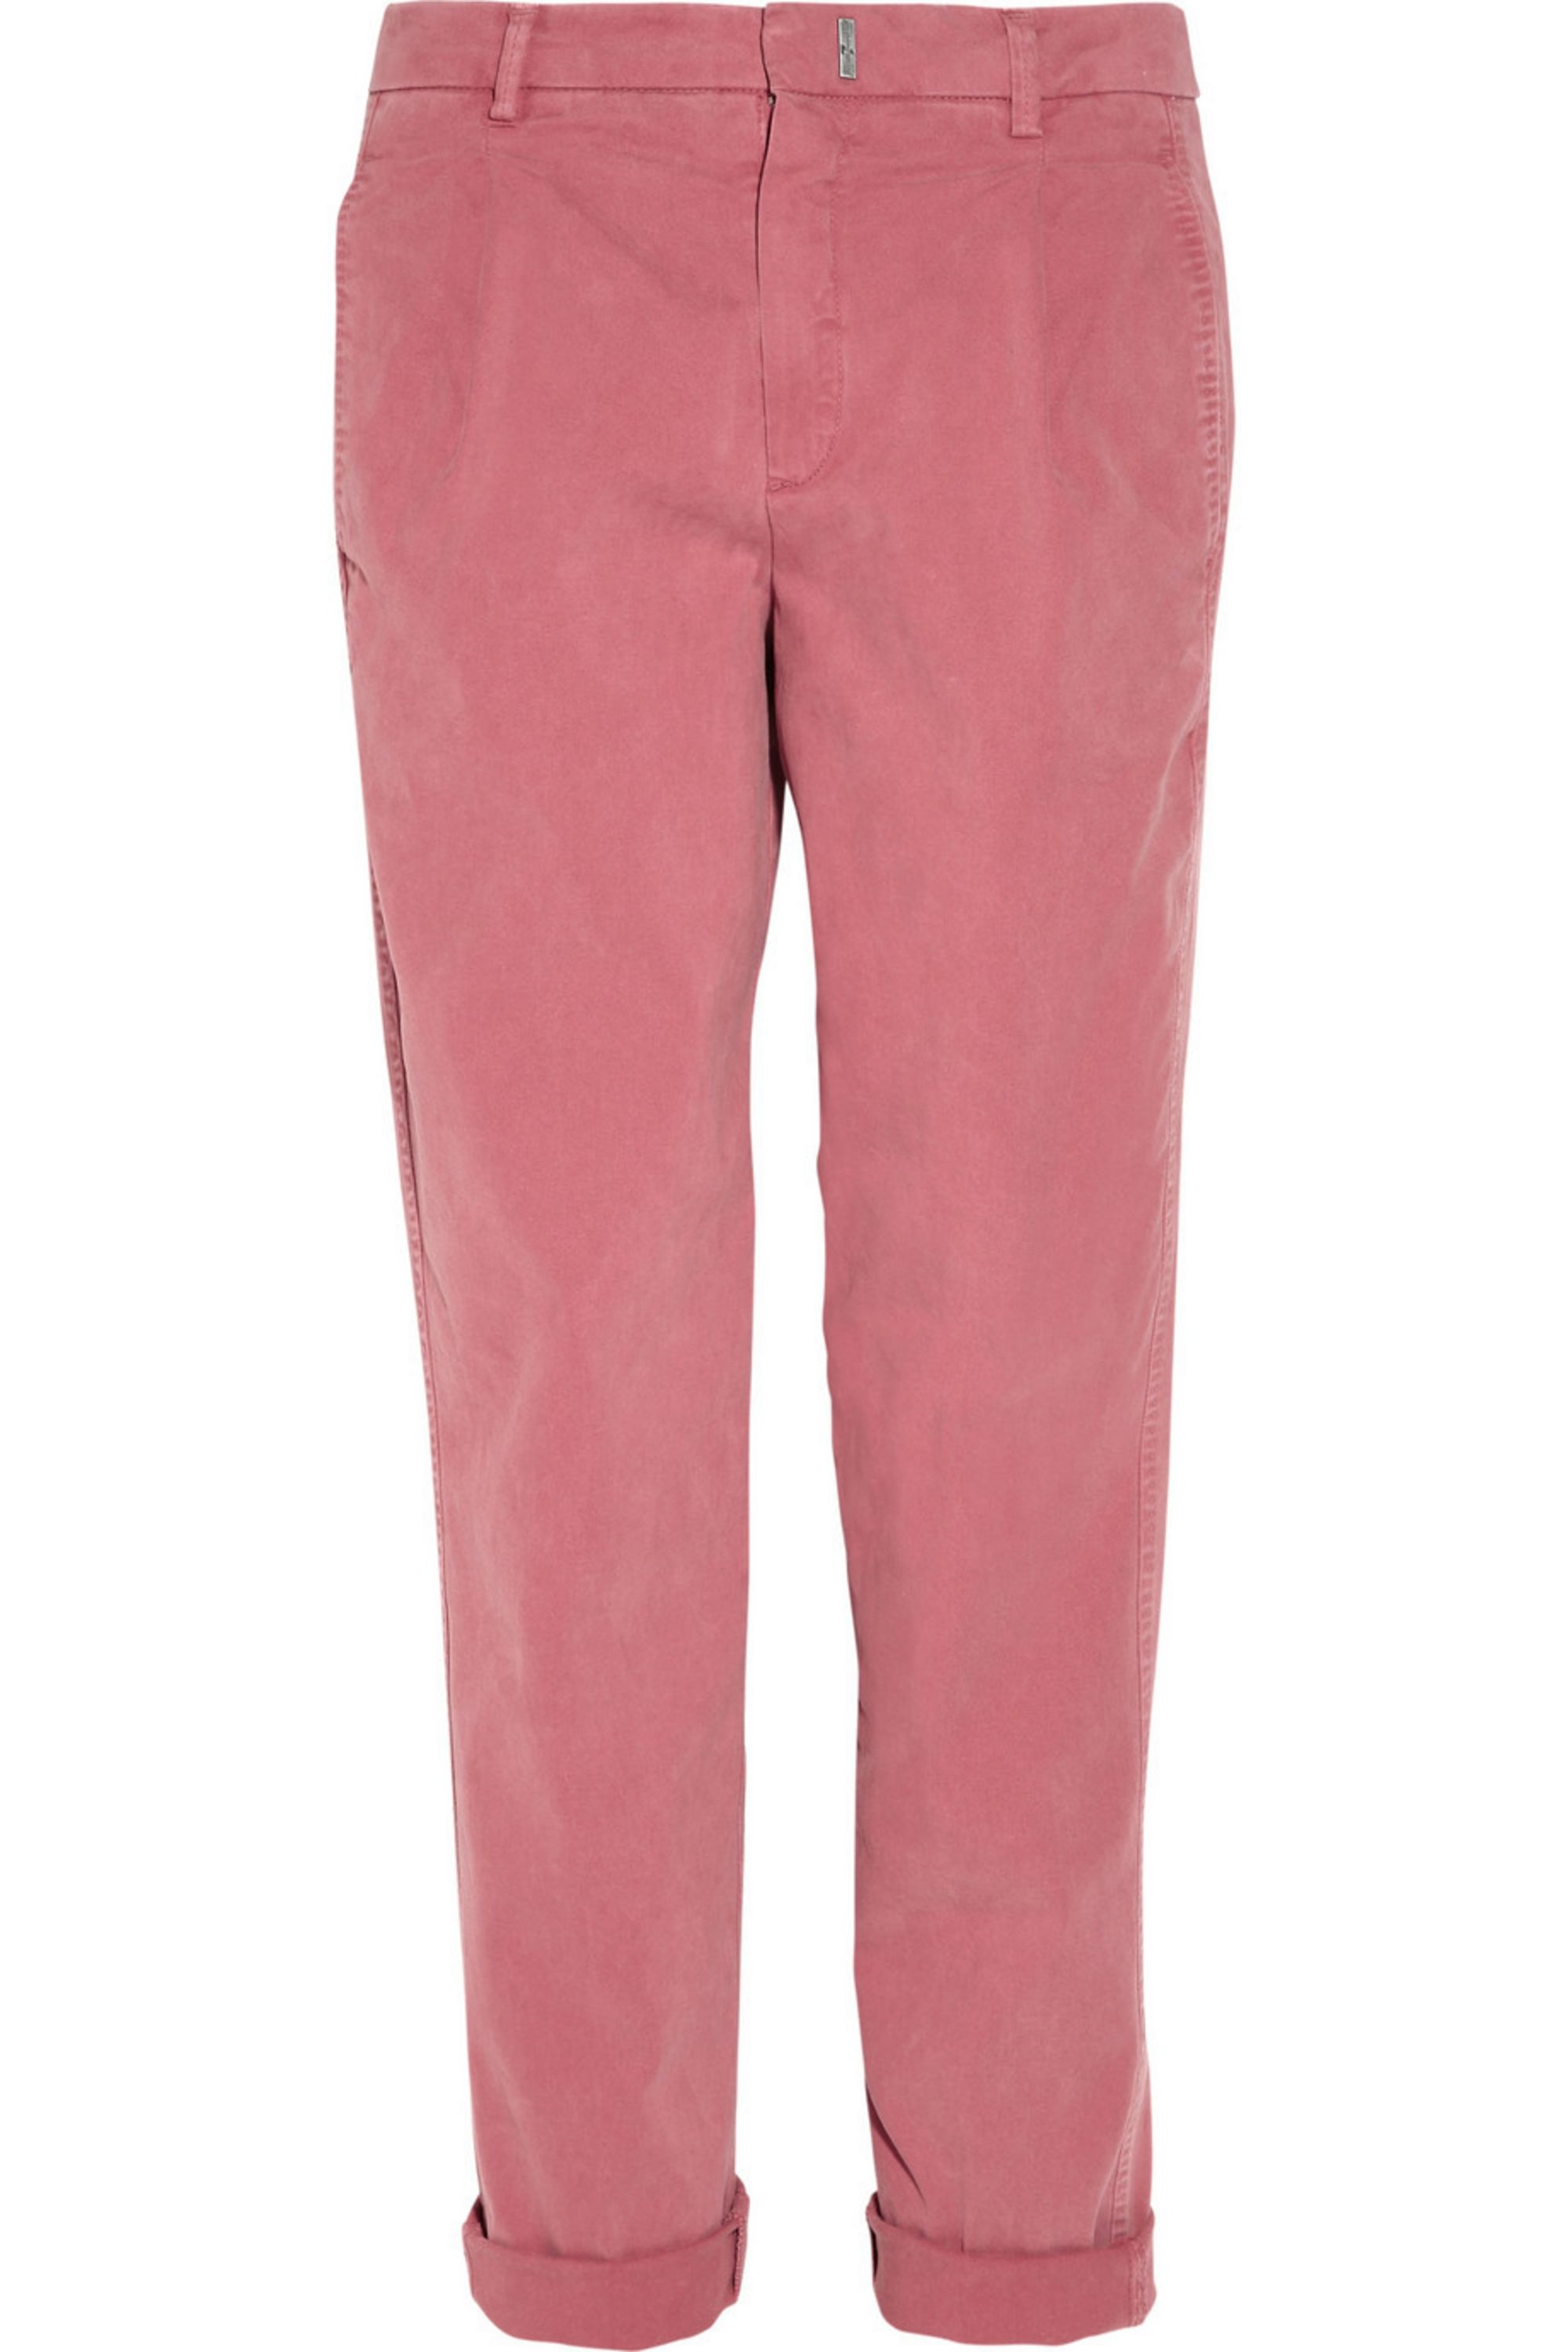 7 for all mankind Boy cropped stretch-cotton chinos